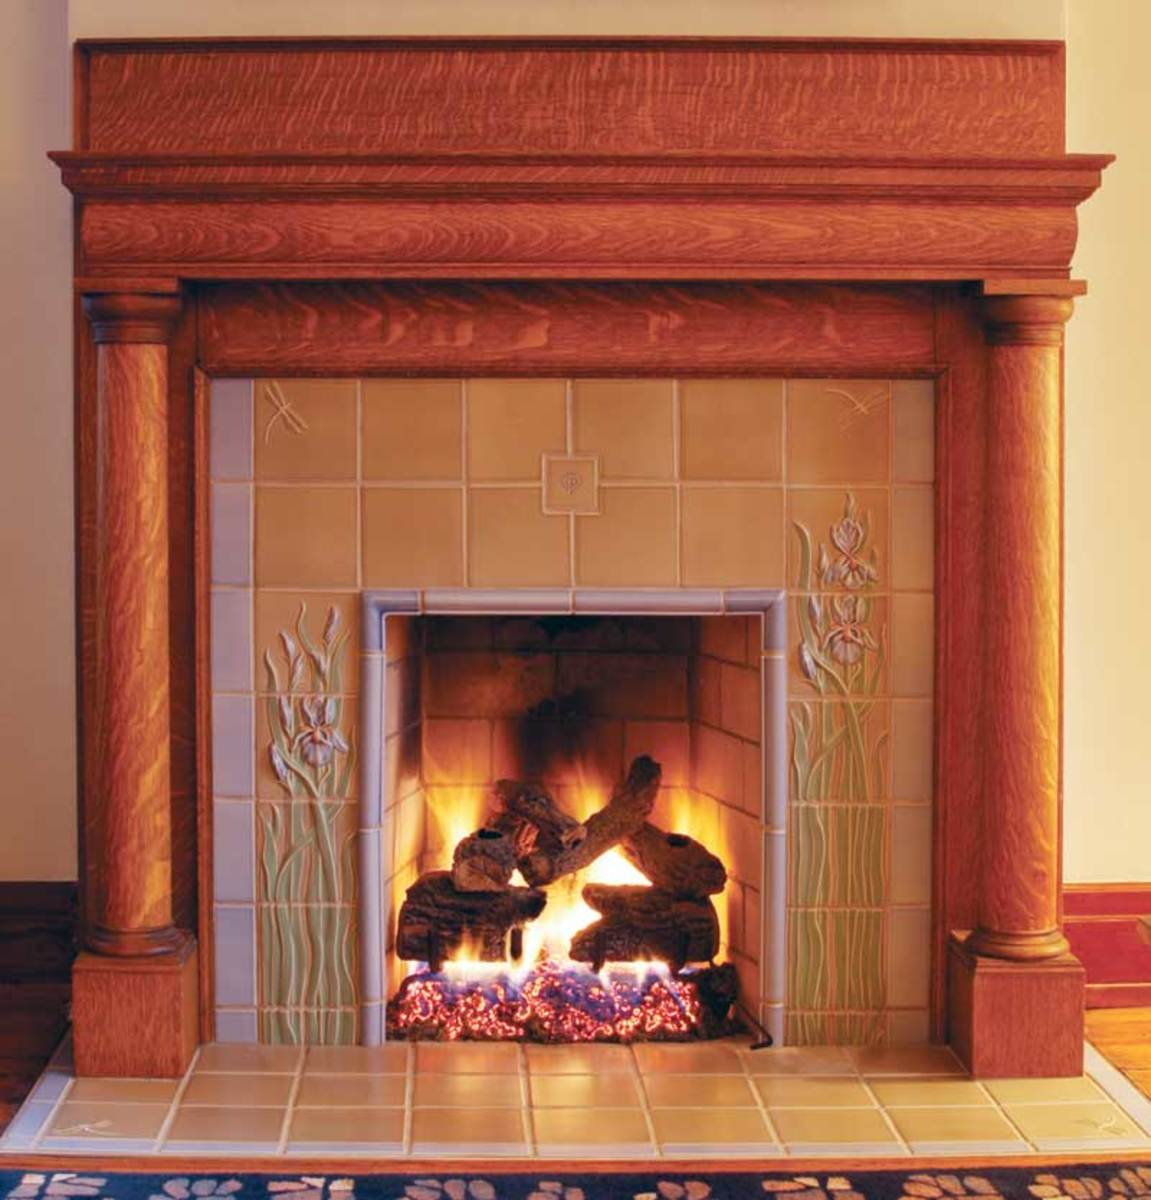 Tree Of Life Fireplace Surround: Arts & Crafts Homes And The Revival